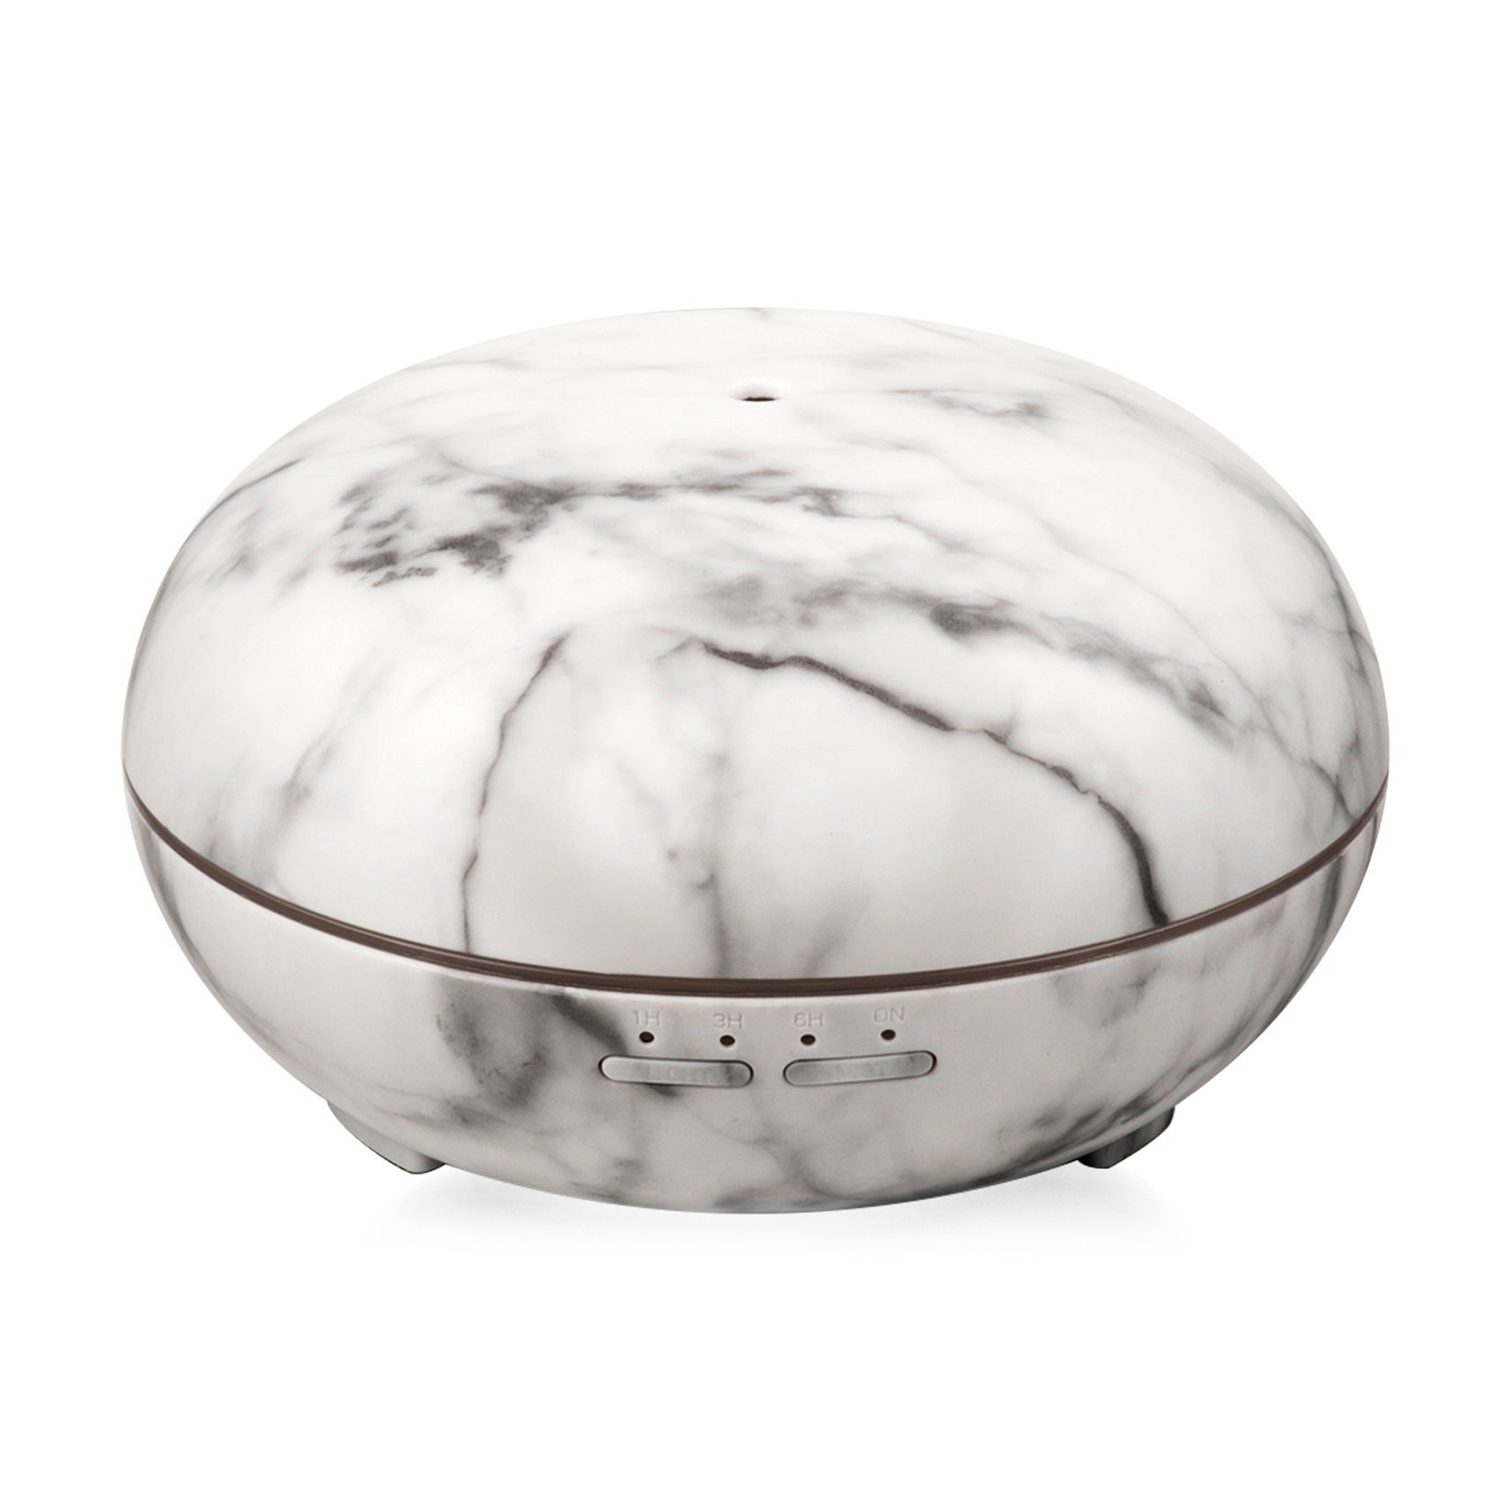 300ml Adjustable Mist Size Essential Oil Diffuser White Marble  Ultrasonic Aroma Diffuser Humidifier for Office Home300ml Adjustable Mist Size Essential Oil Diffuser White Marble  Ultrasonic Aroma Diffuser Humidifier for Office Home